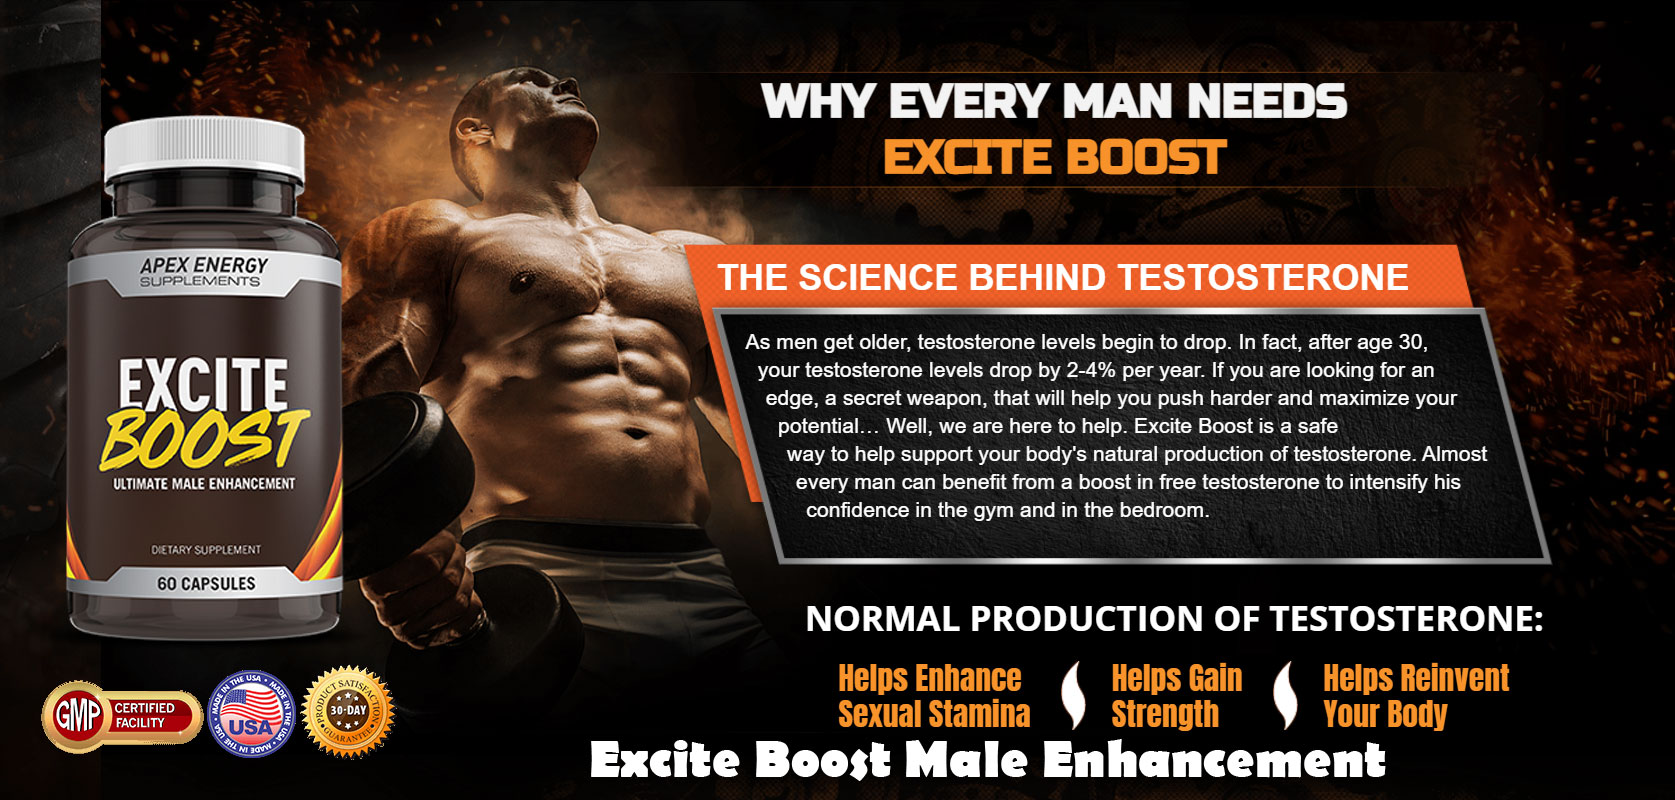 Excite-Boost-Male-Enhancement12gjgm.54